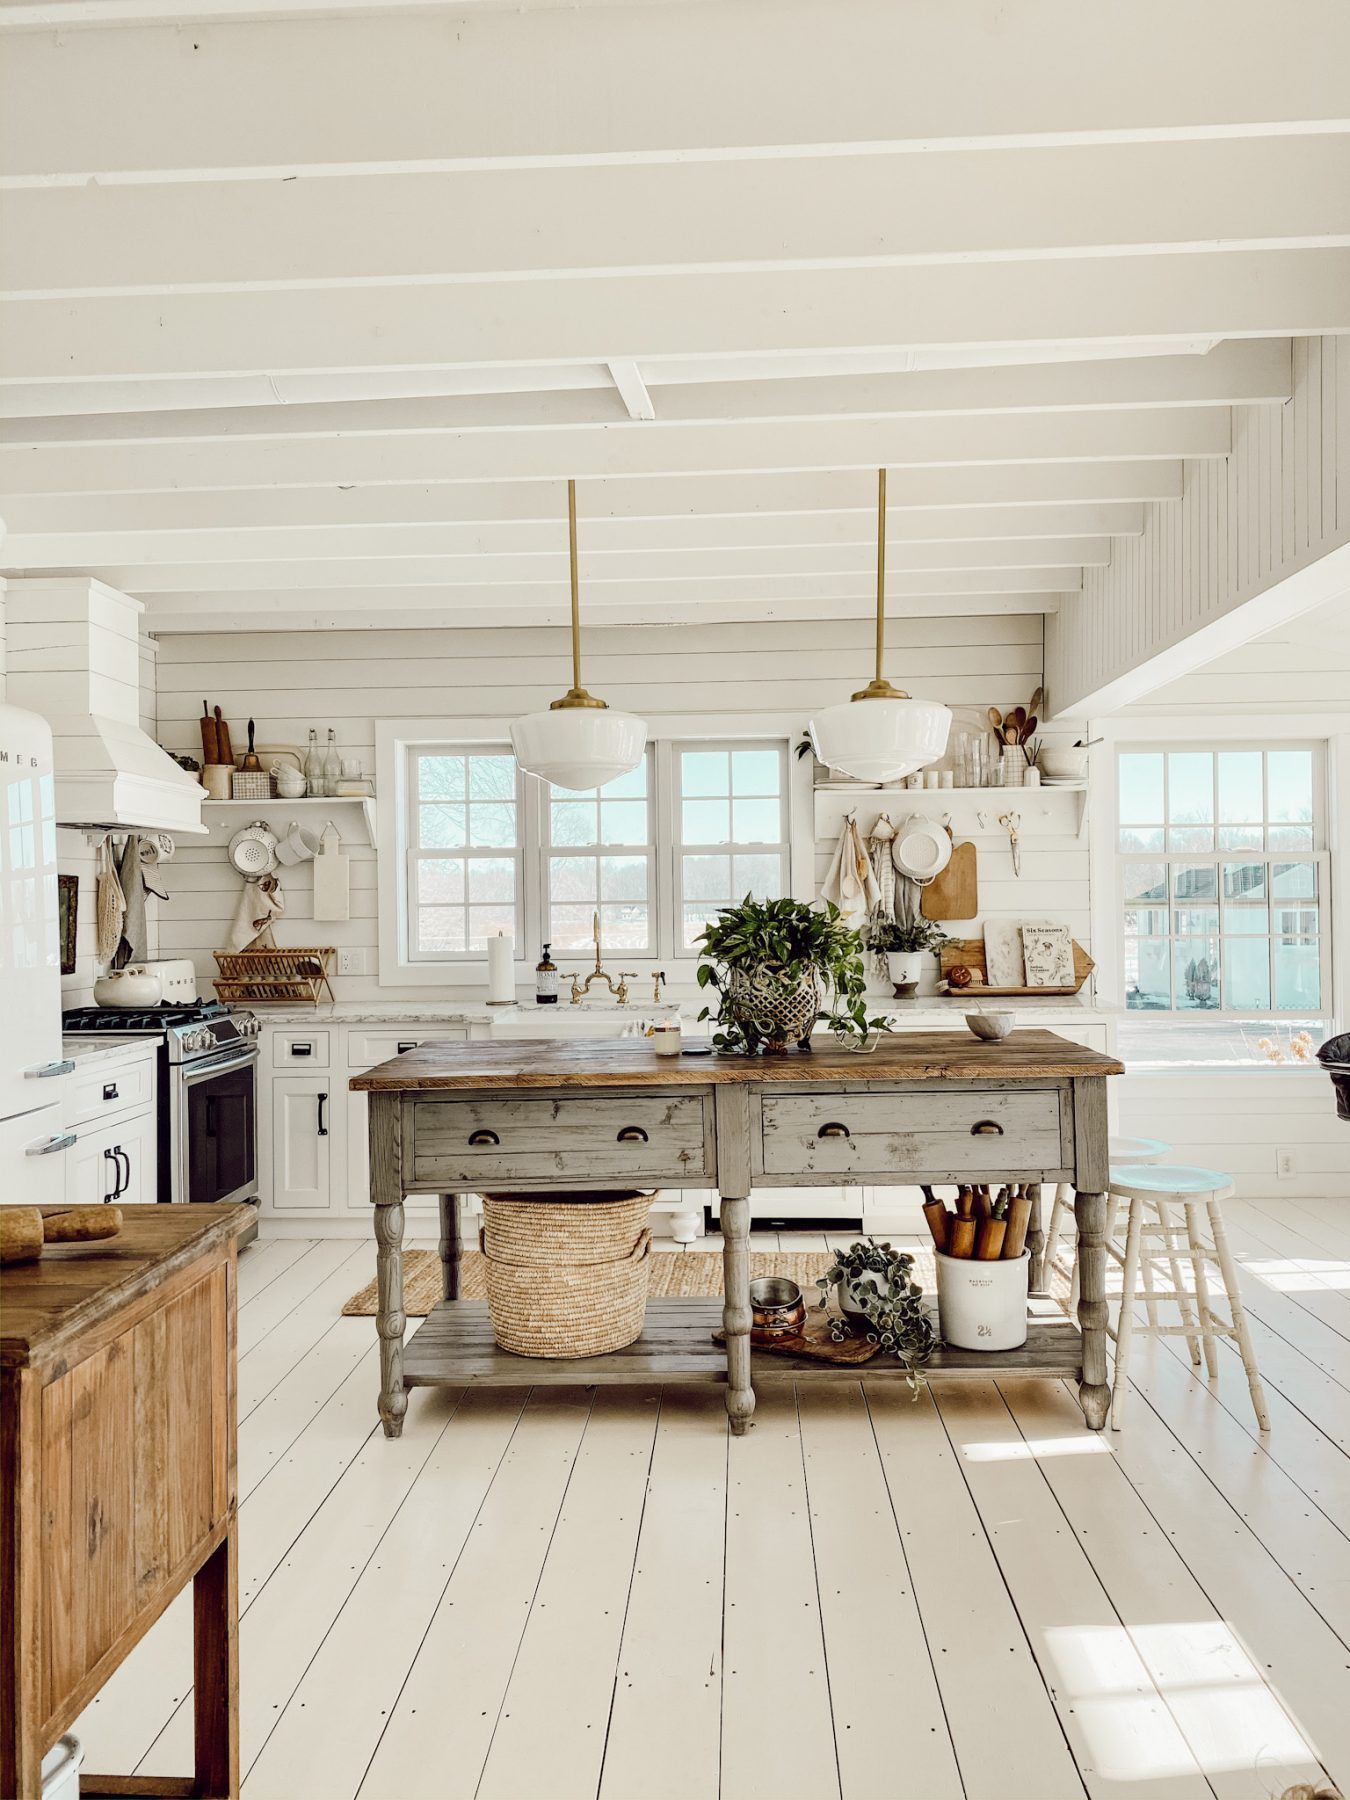 our open concept ceilings faq s cottageinteriors in 2020 kitchen interior farmhouse style on kitchen interior farmhouse id=17179